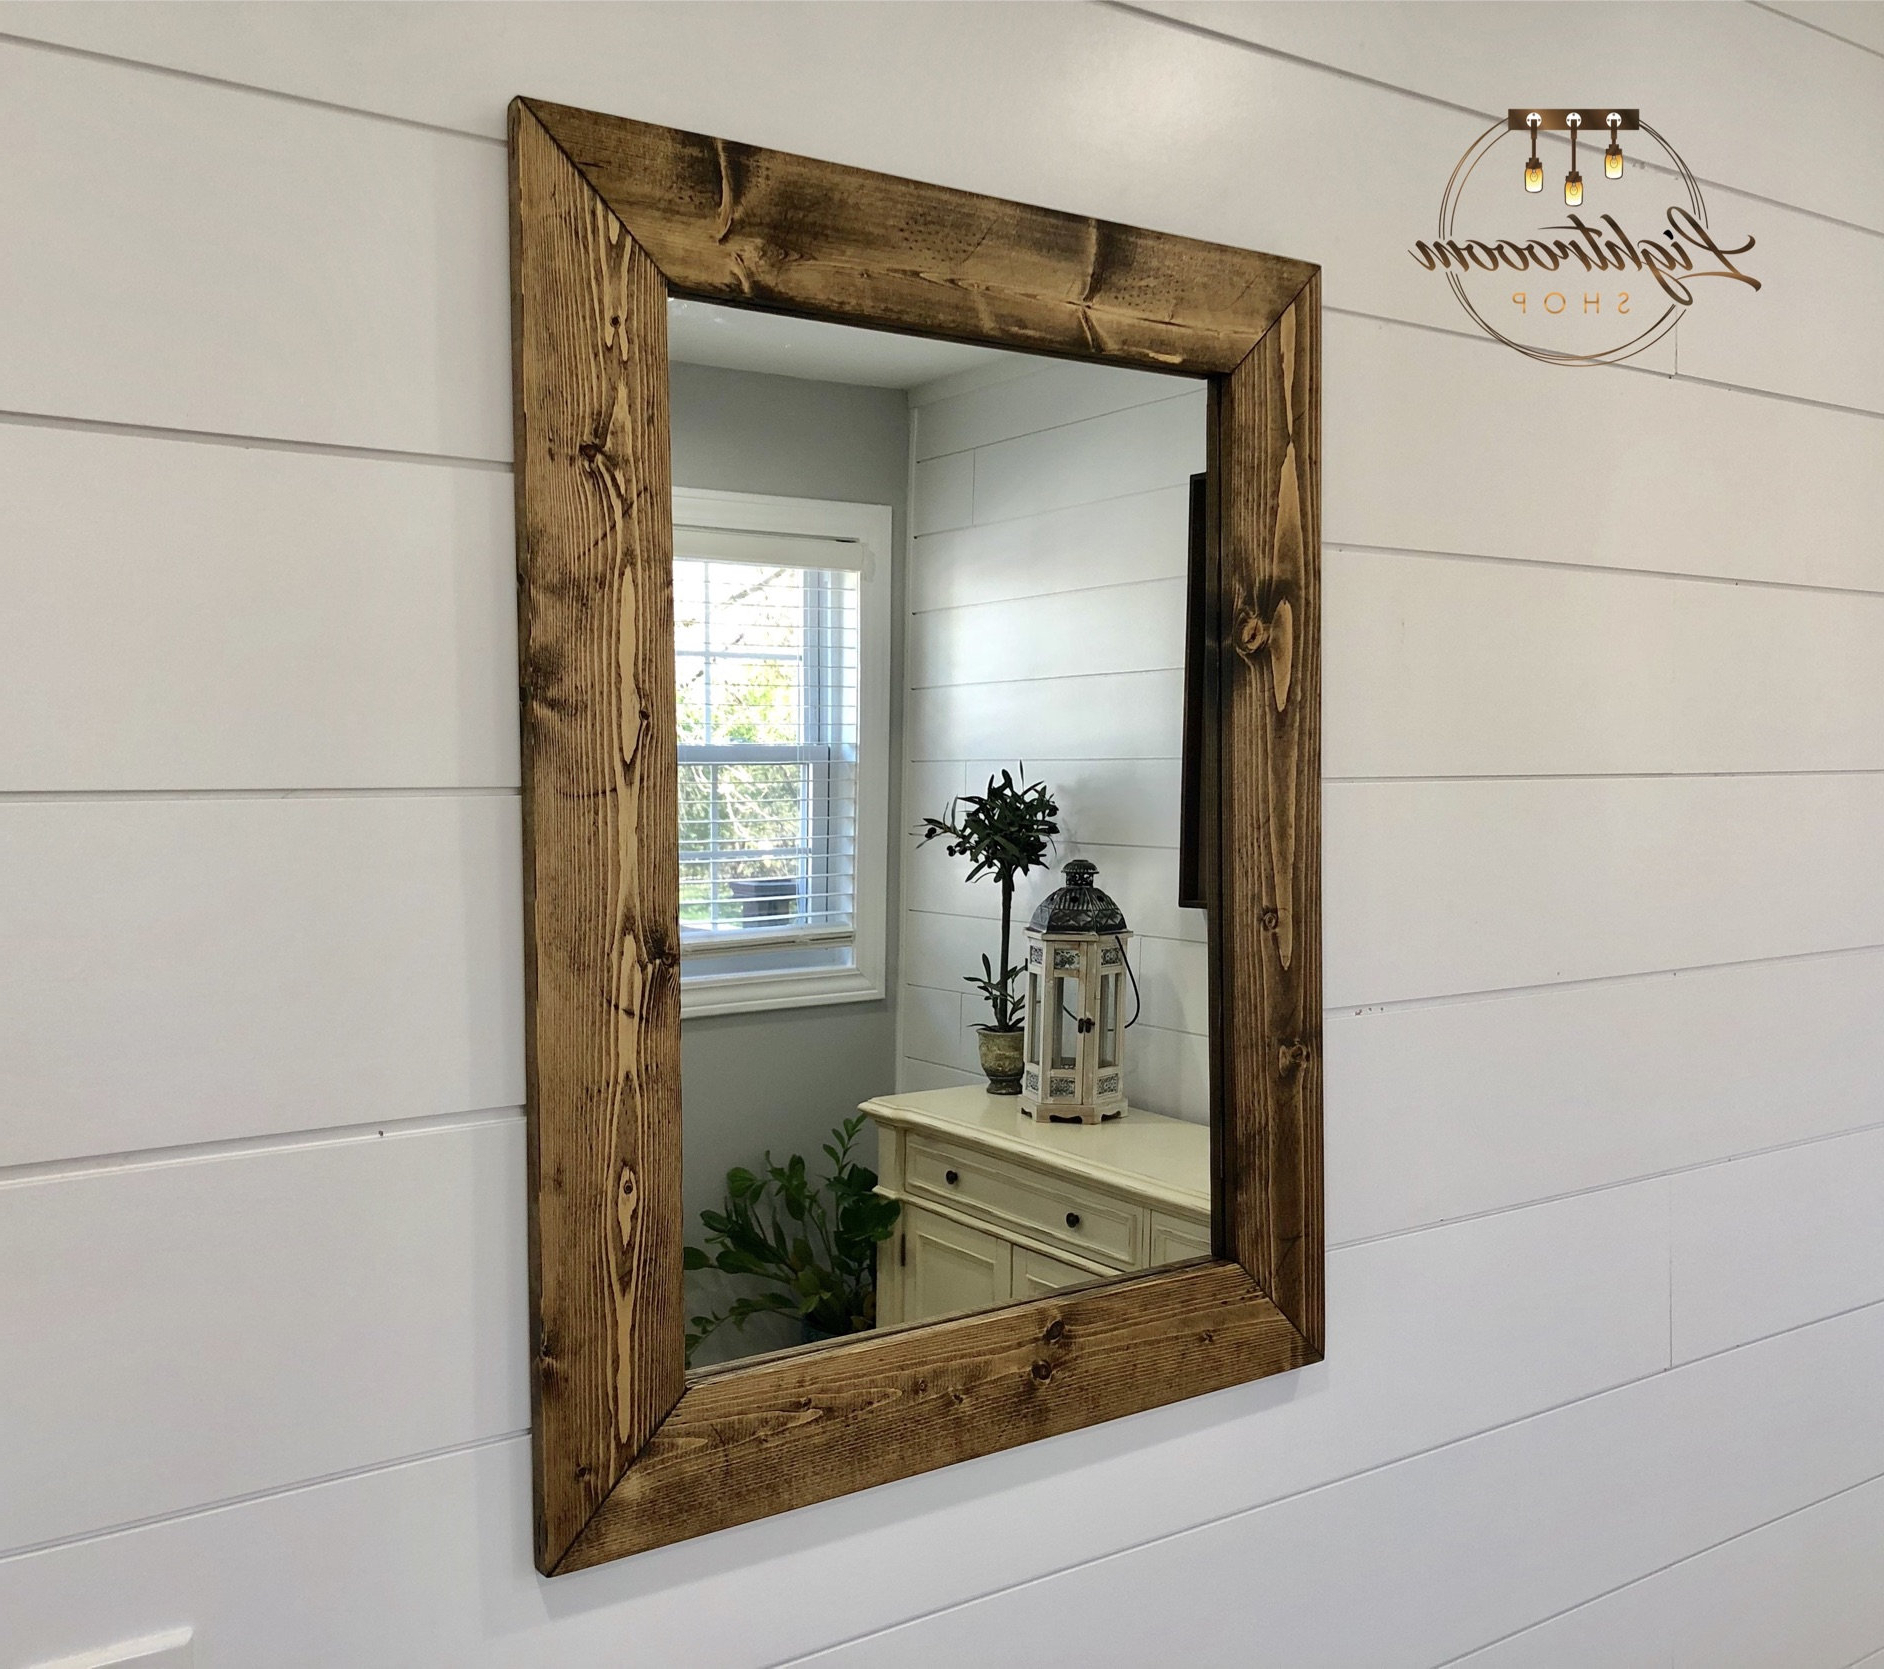 Well Liked Wooden Framed Wall Mirrors Intended For Dark Walnut Mirror, Wood Frame Mirror, Handmade Rustic Wood Mirror, Bathroom Mirror, Framed Wall Mirror, Vanity Mirror, Large Mirror, Modern (View 9 of 20)